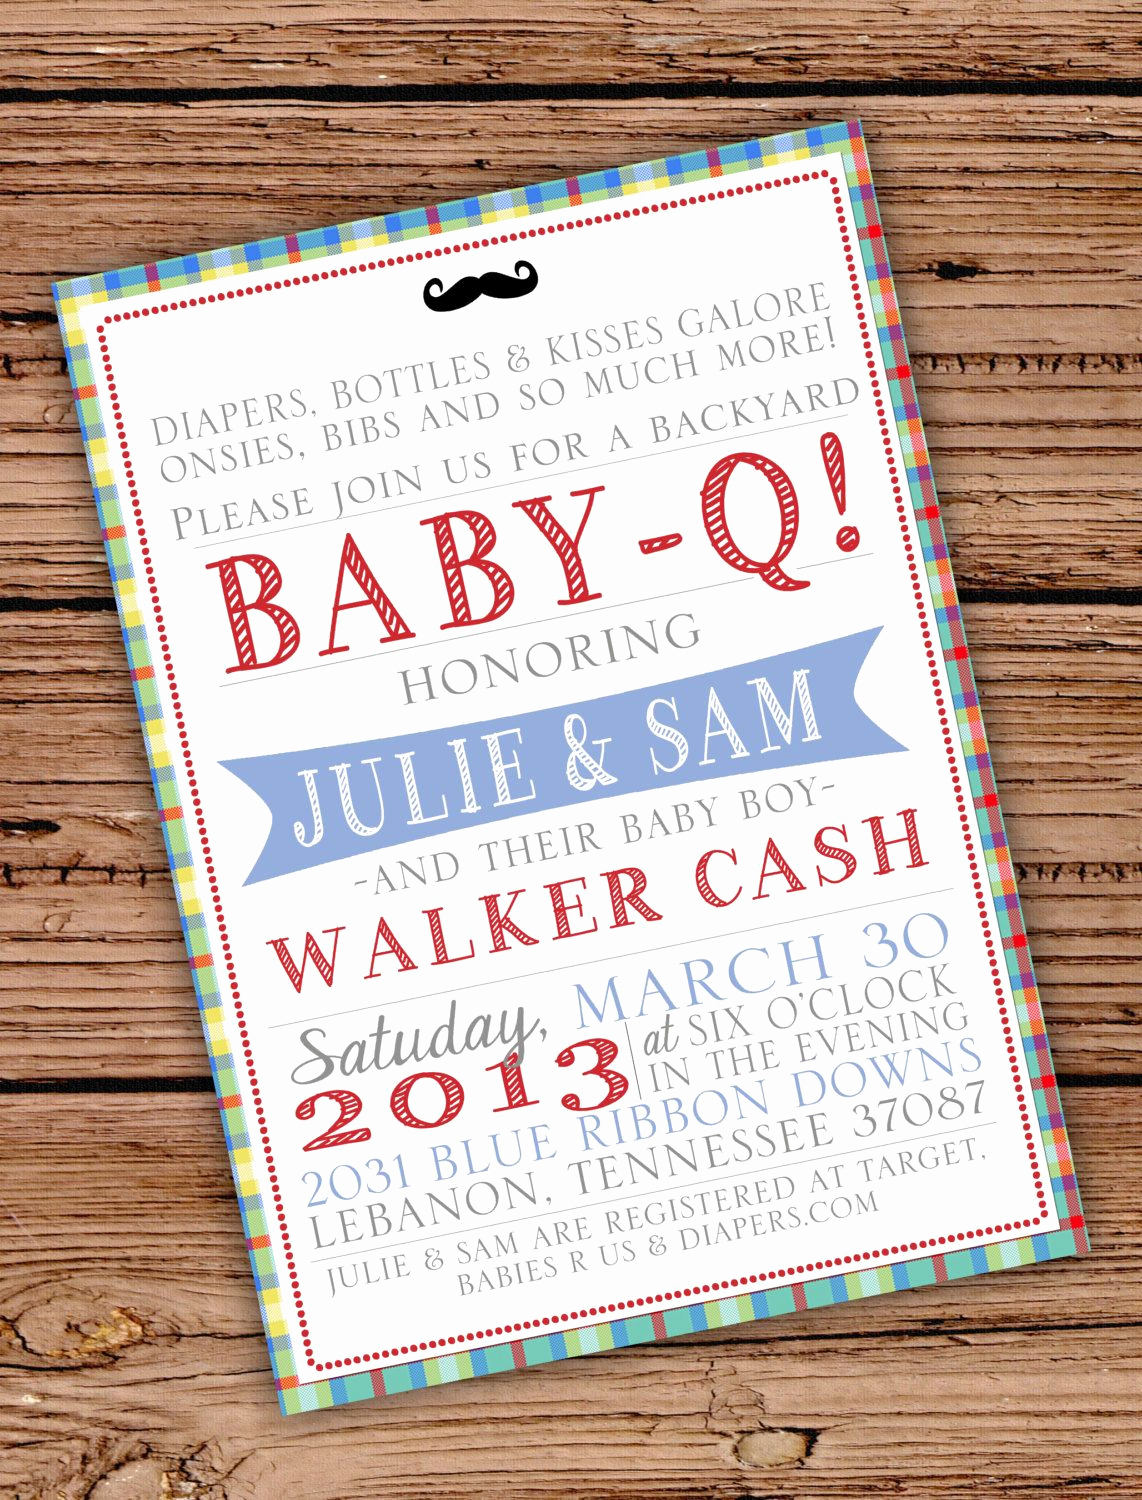 Meet and Greet Invitation Unique Baby Boy Shower Invitation Babyq Love This Idea for Baby